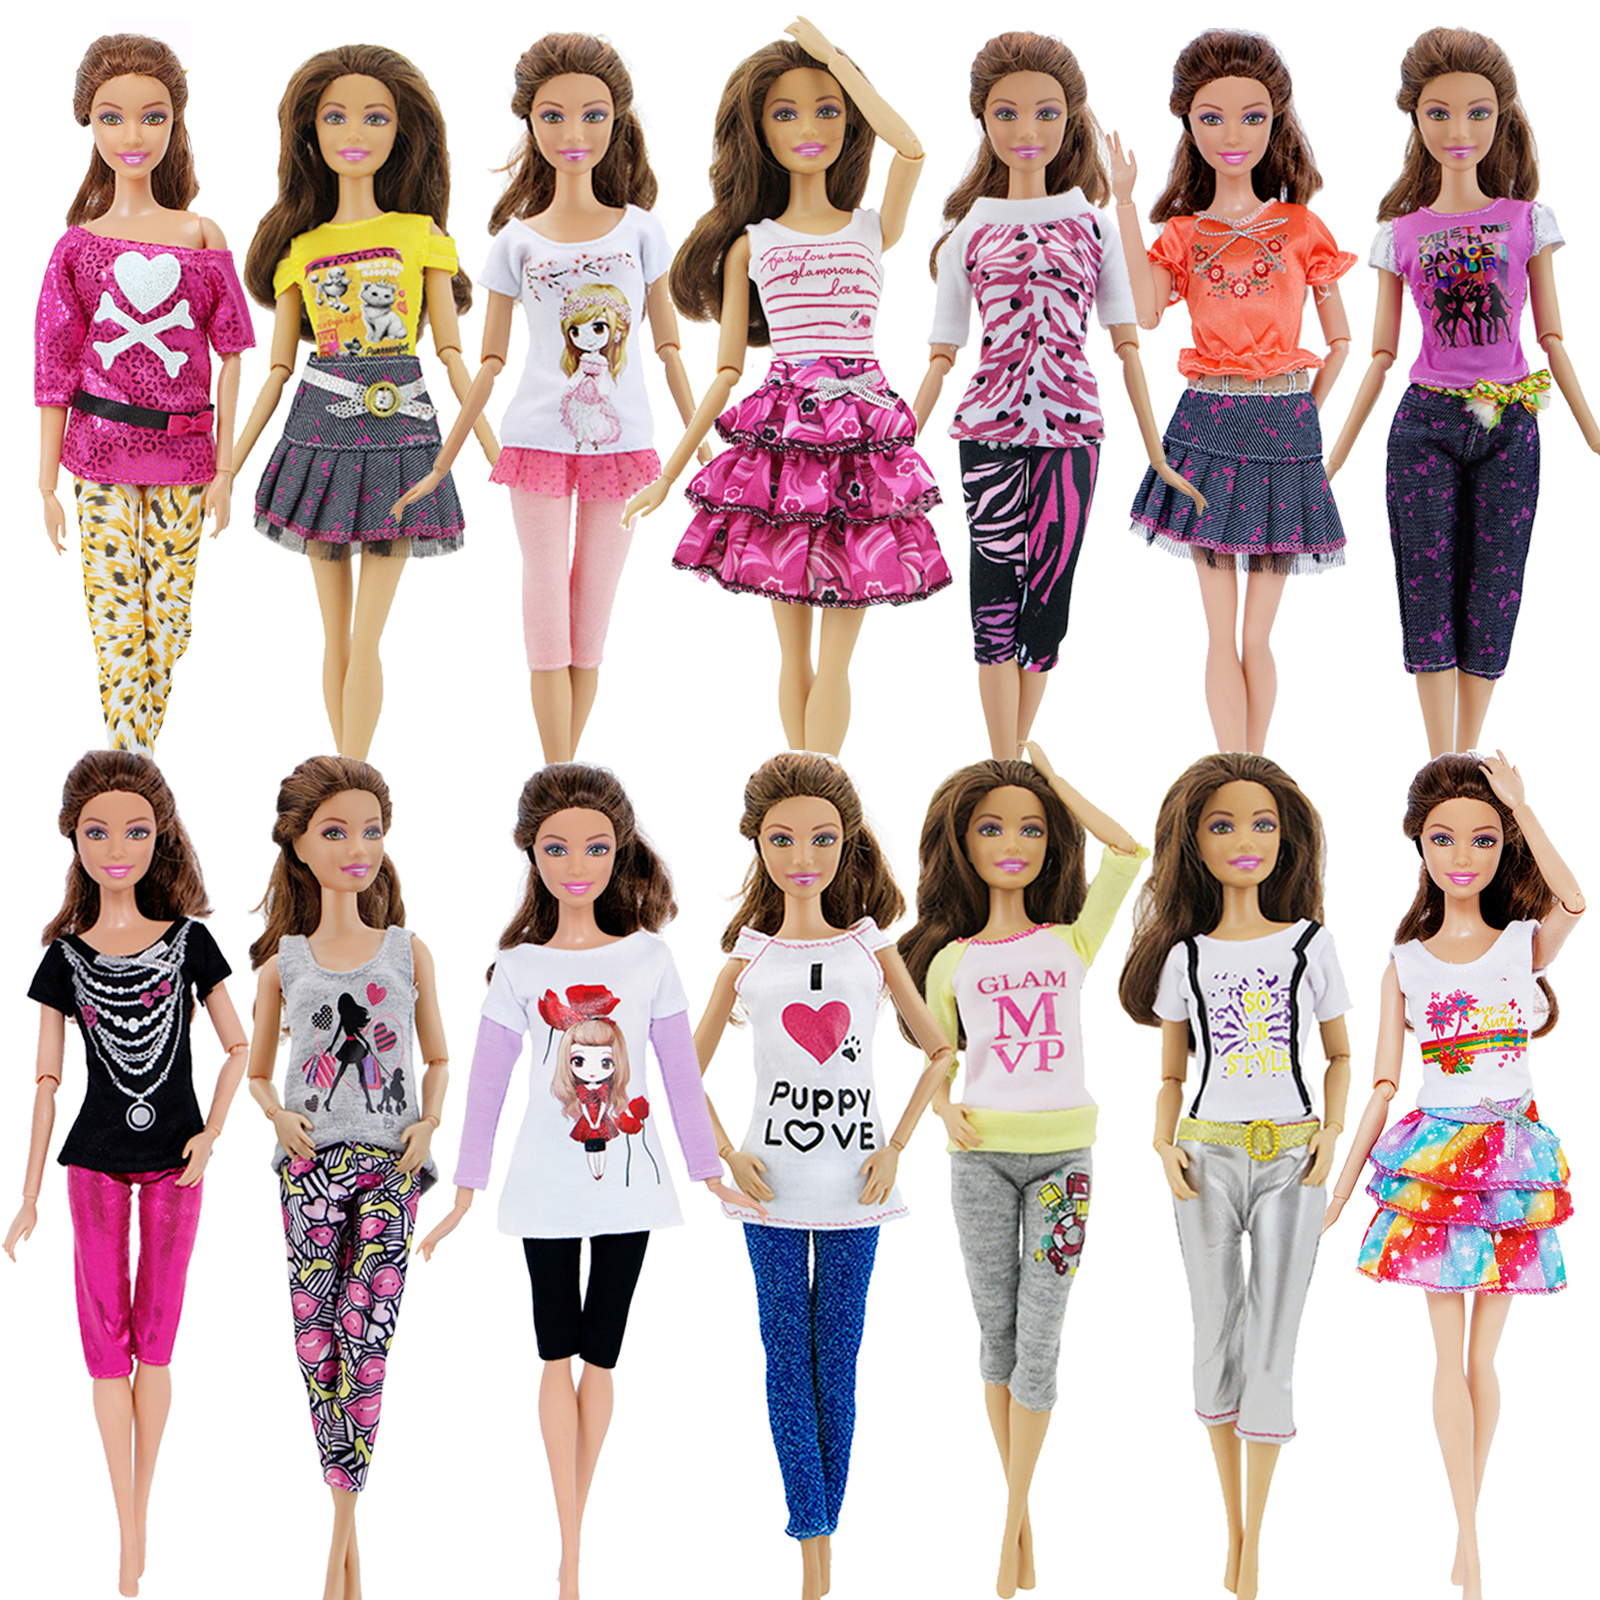 1x Fashion Mix Style Cute Doll Clothes Dress Daily Casual Skirt Shirt Blouse Pants For Barbie Doll Accessories Lovely Girl Toy